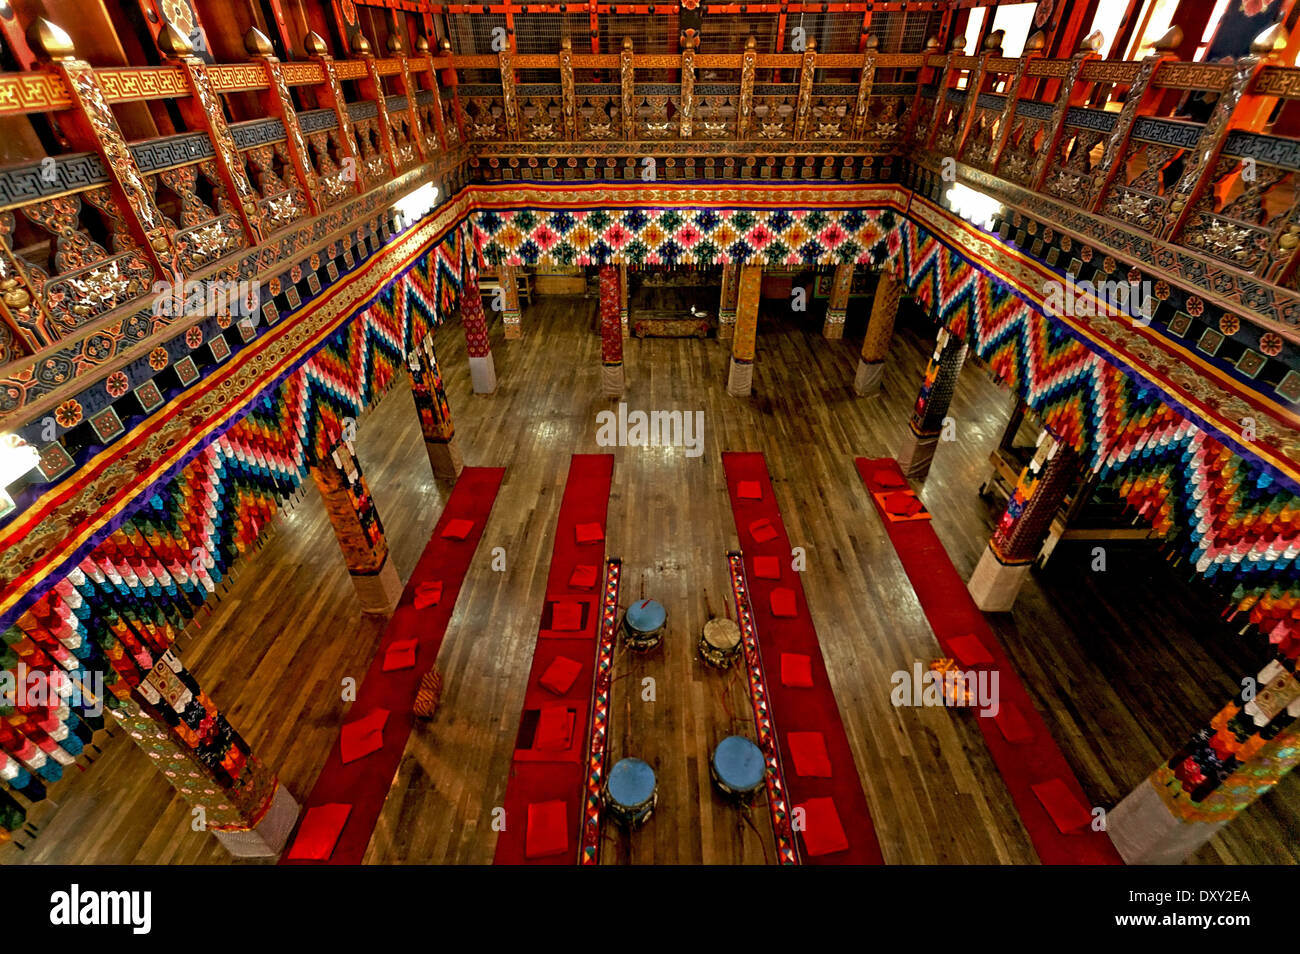 Prayer hall in Punakha Dzong (temple). Digitally Manipulated Image. Stylised by sharpening and enhancing color. - Stock Image